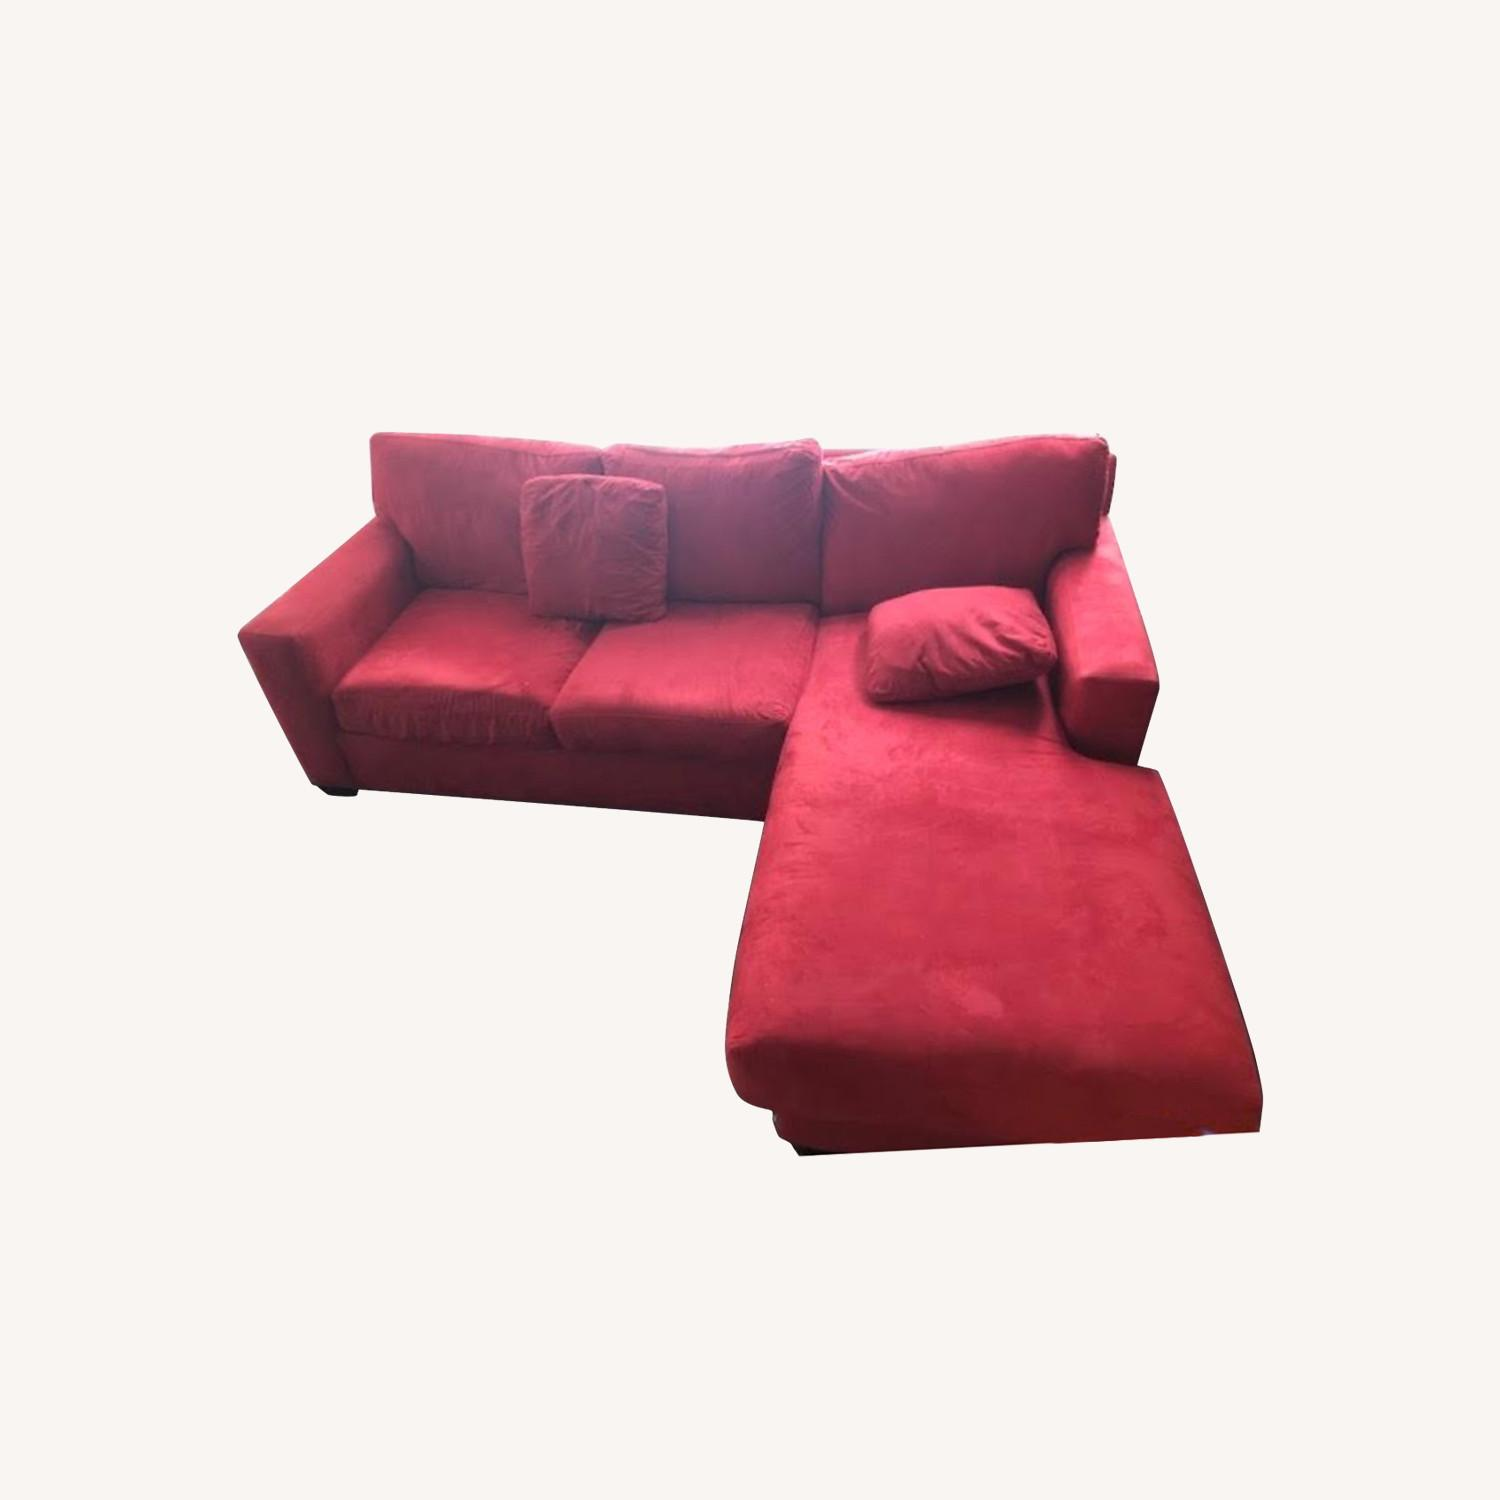 Macy's Red Suede Sofa Bed with Chaise Lounge - image-0